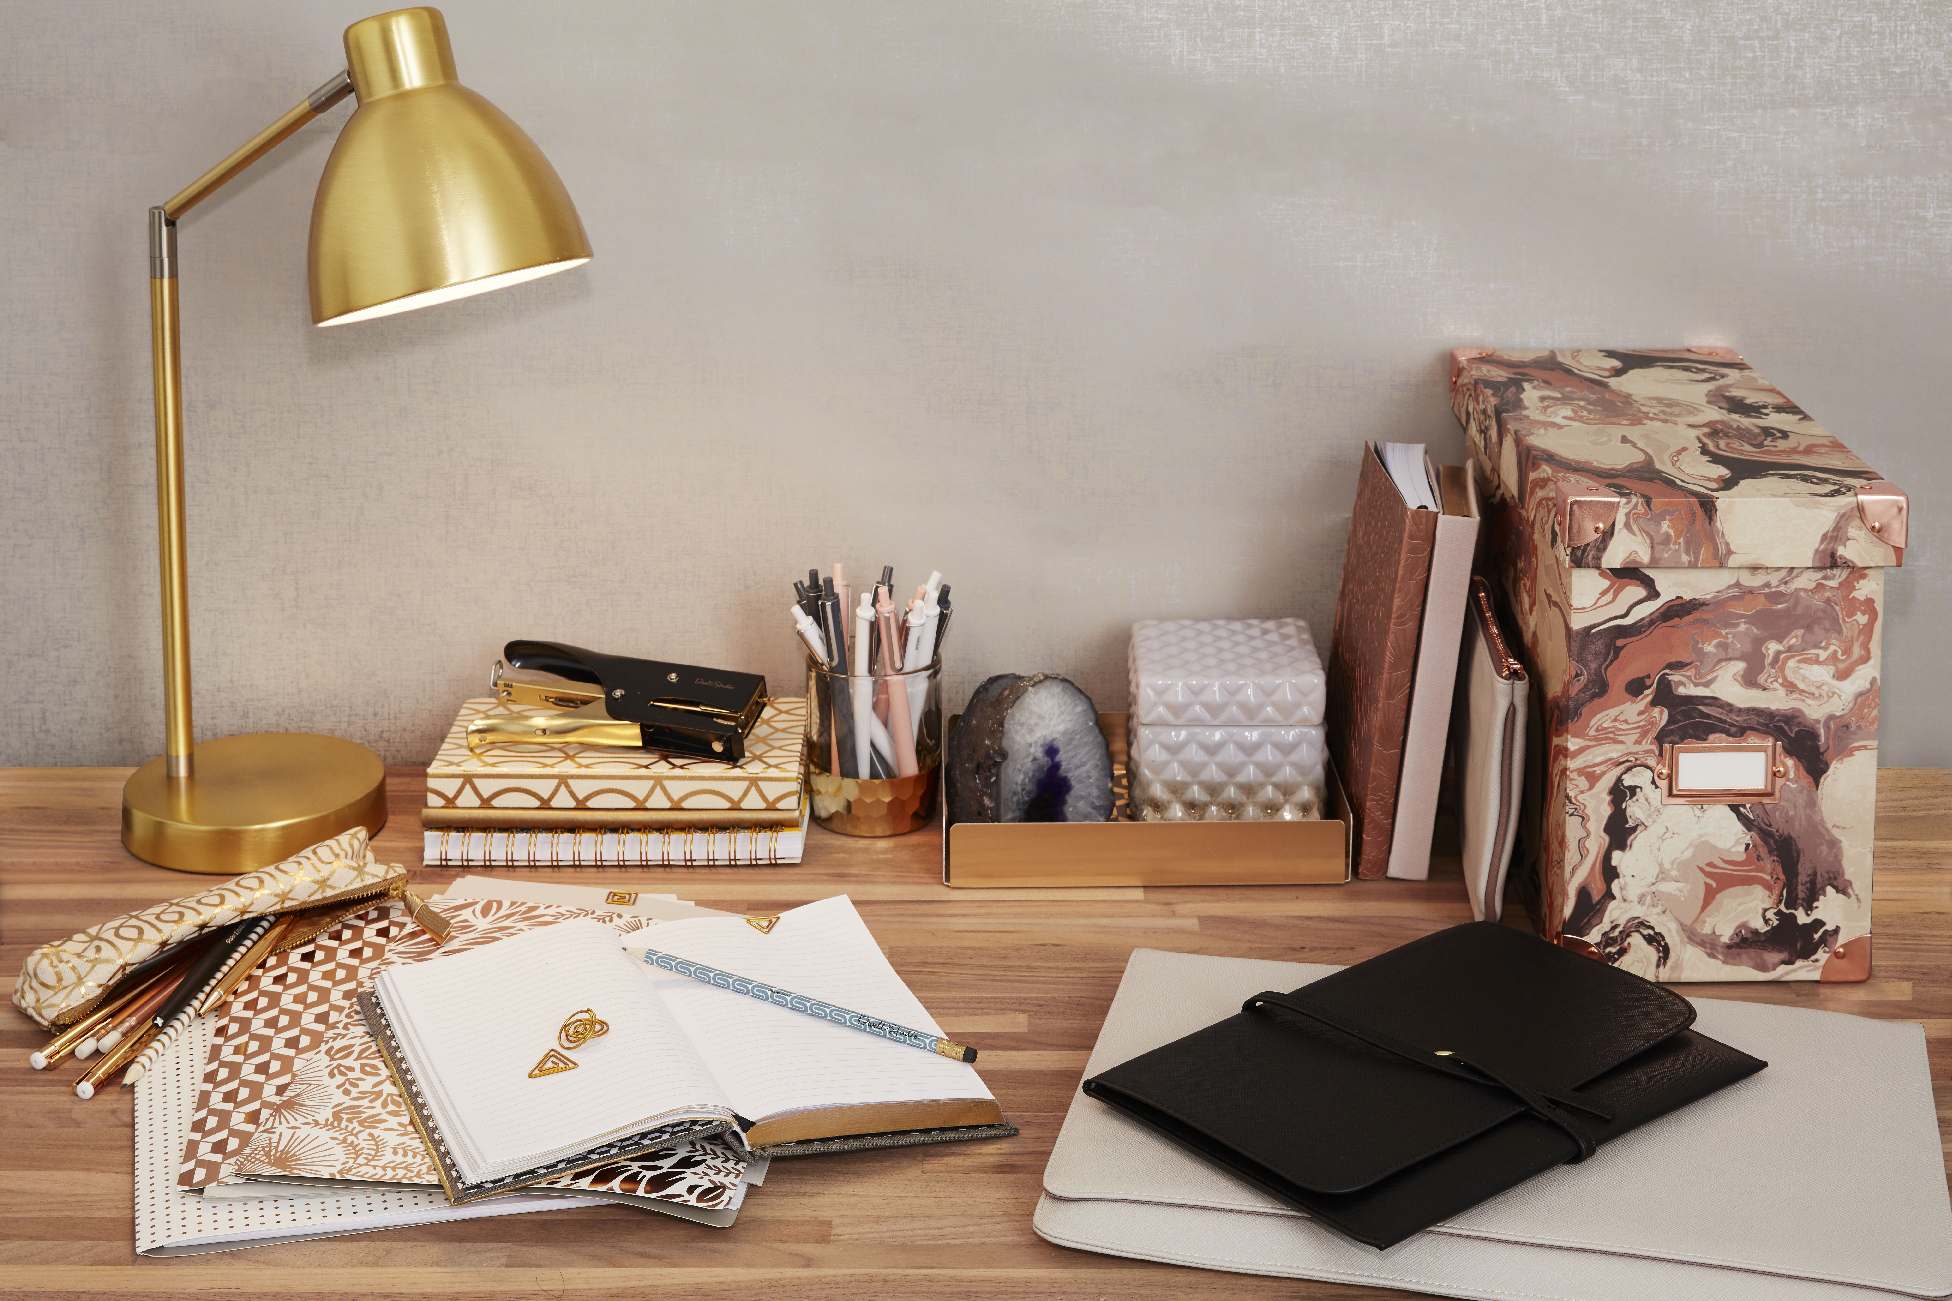 Staples And DwellStudio Collaborate On Exclusive Modern Office Collection |  Business Wire